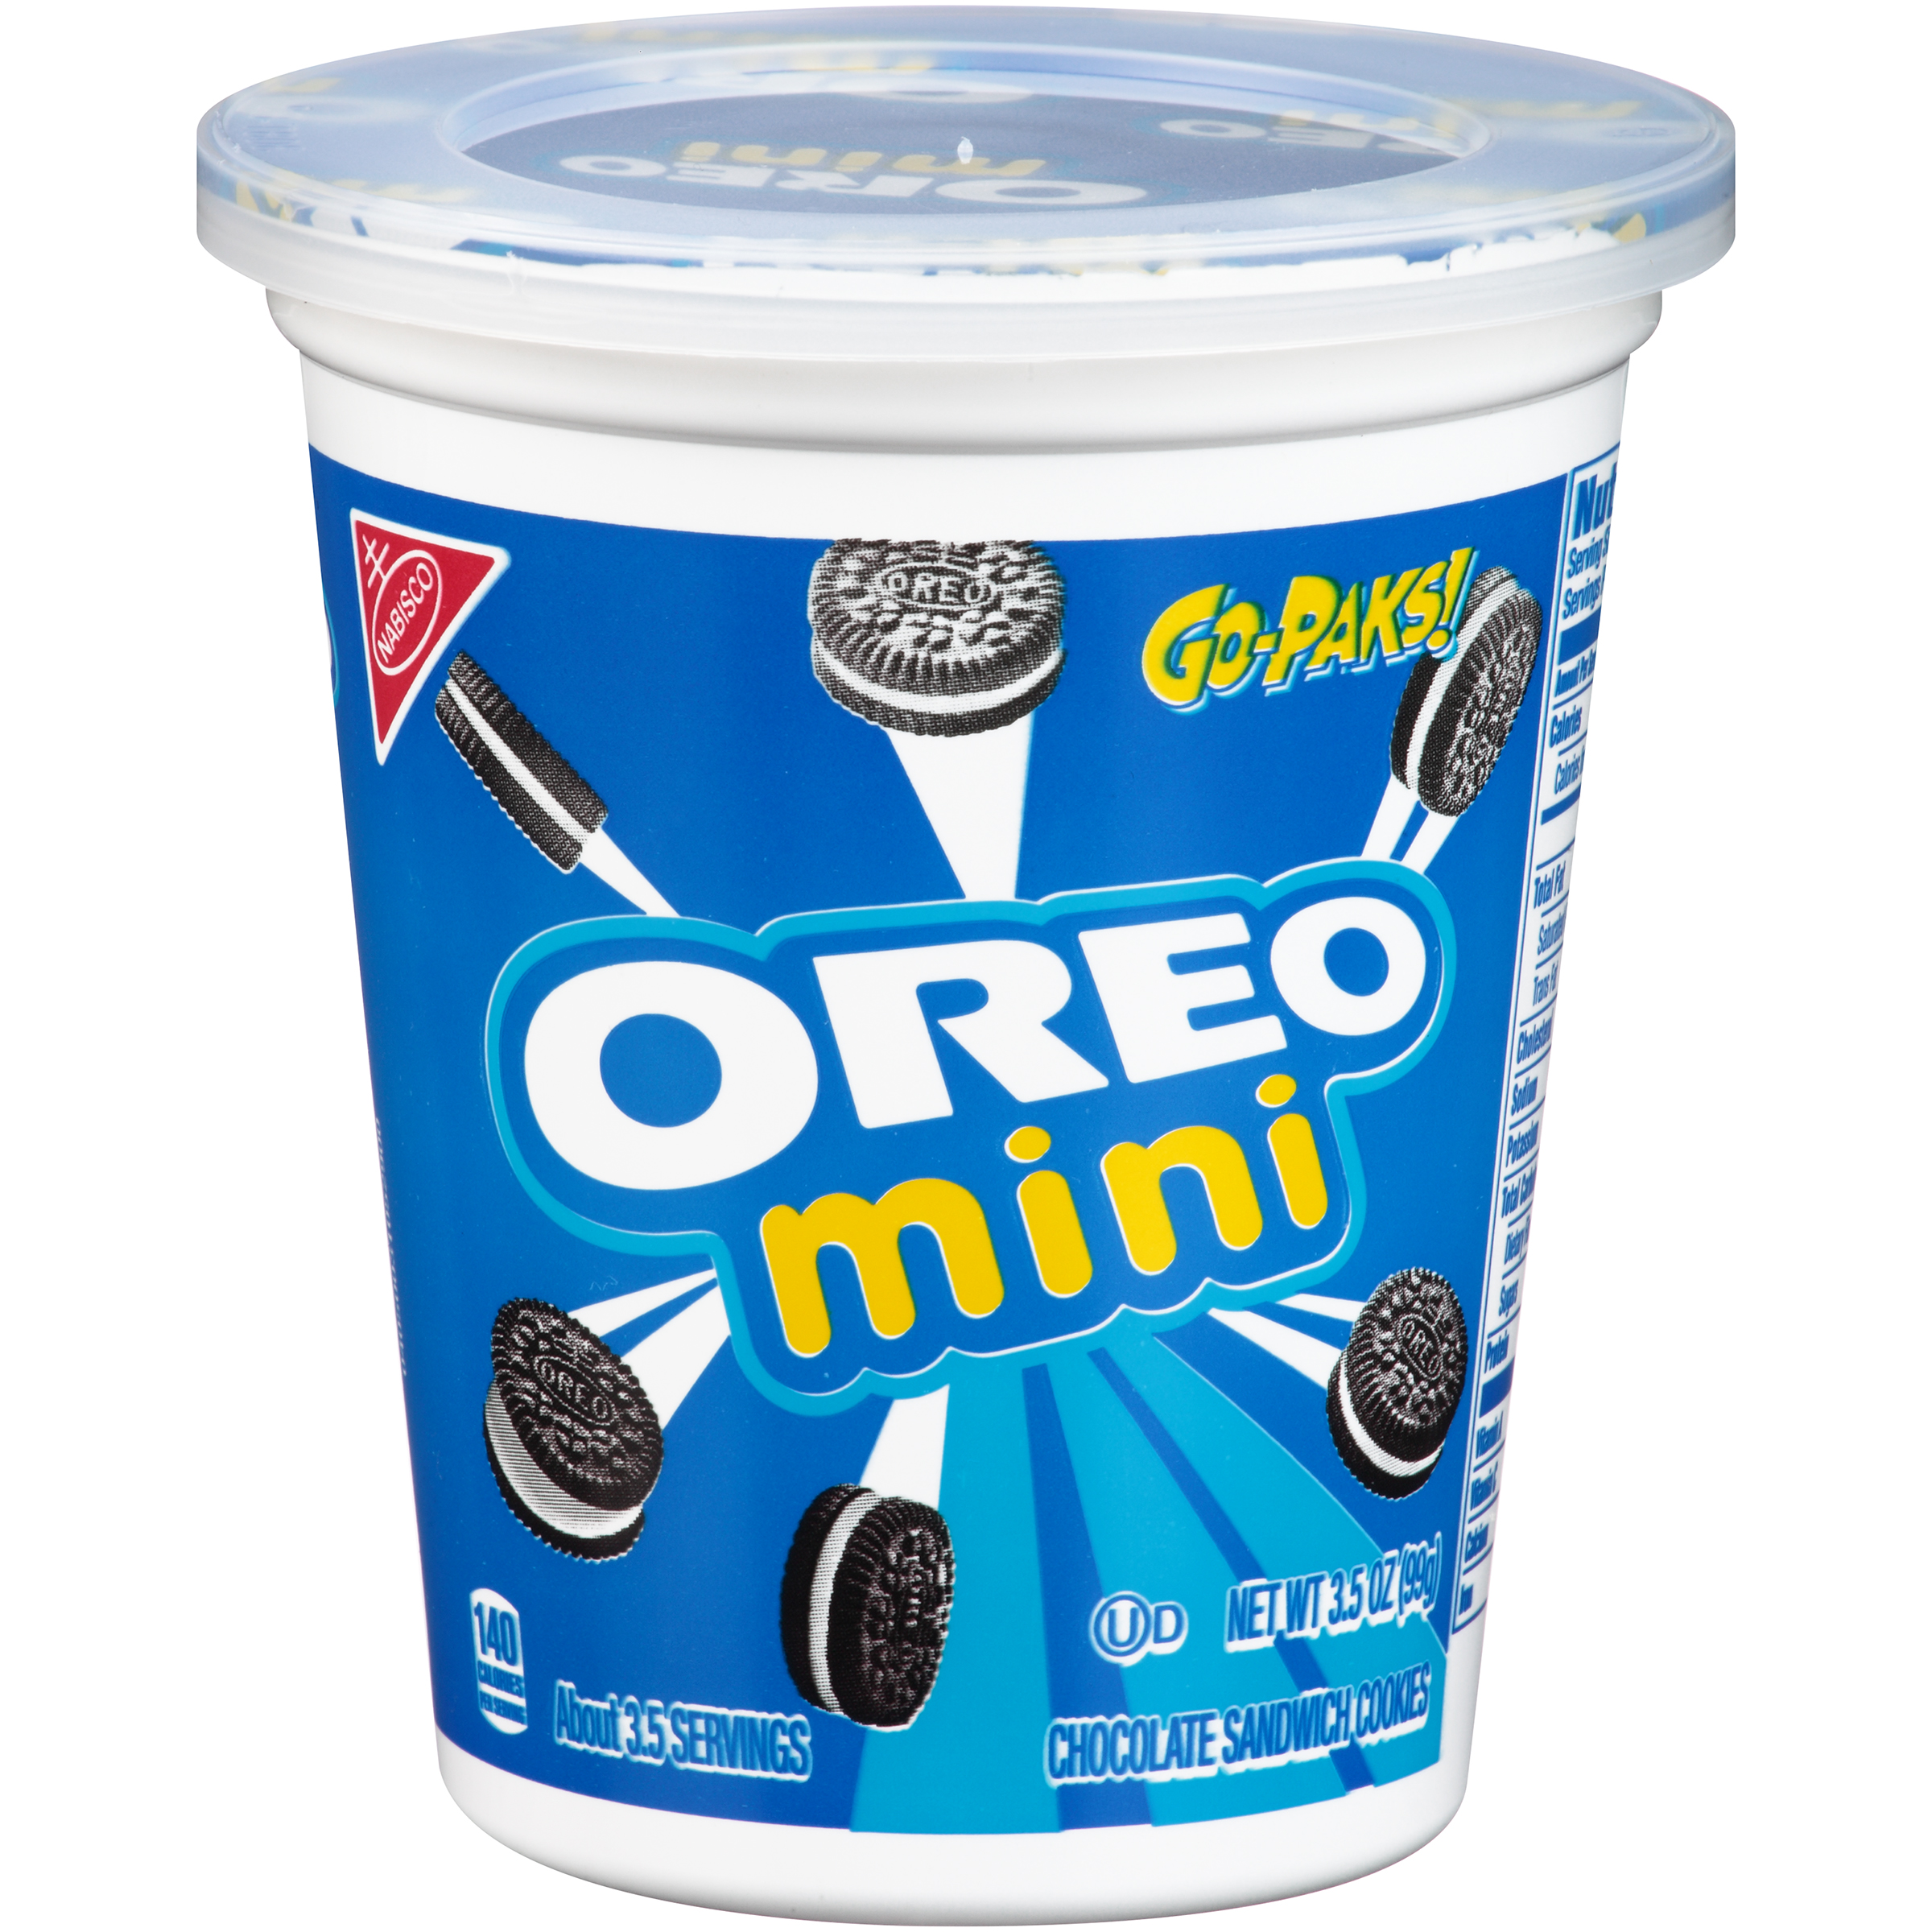 Oreo Mini Chocolate Sandwich Cookies - Go-Pak, 3.5 oz